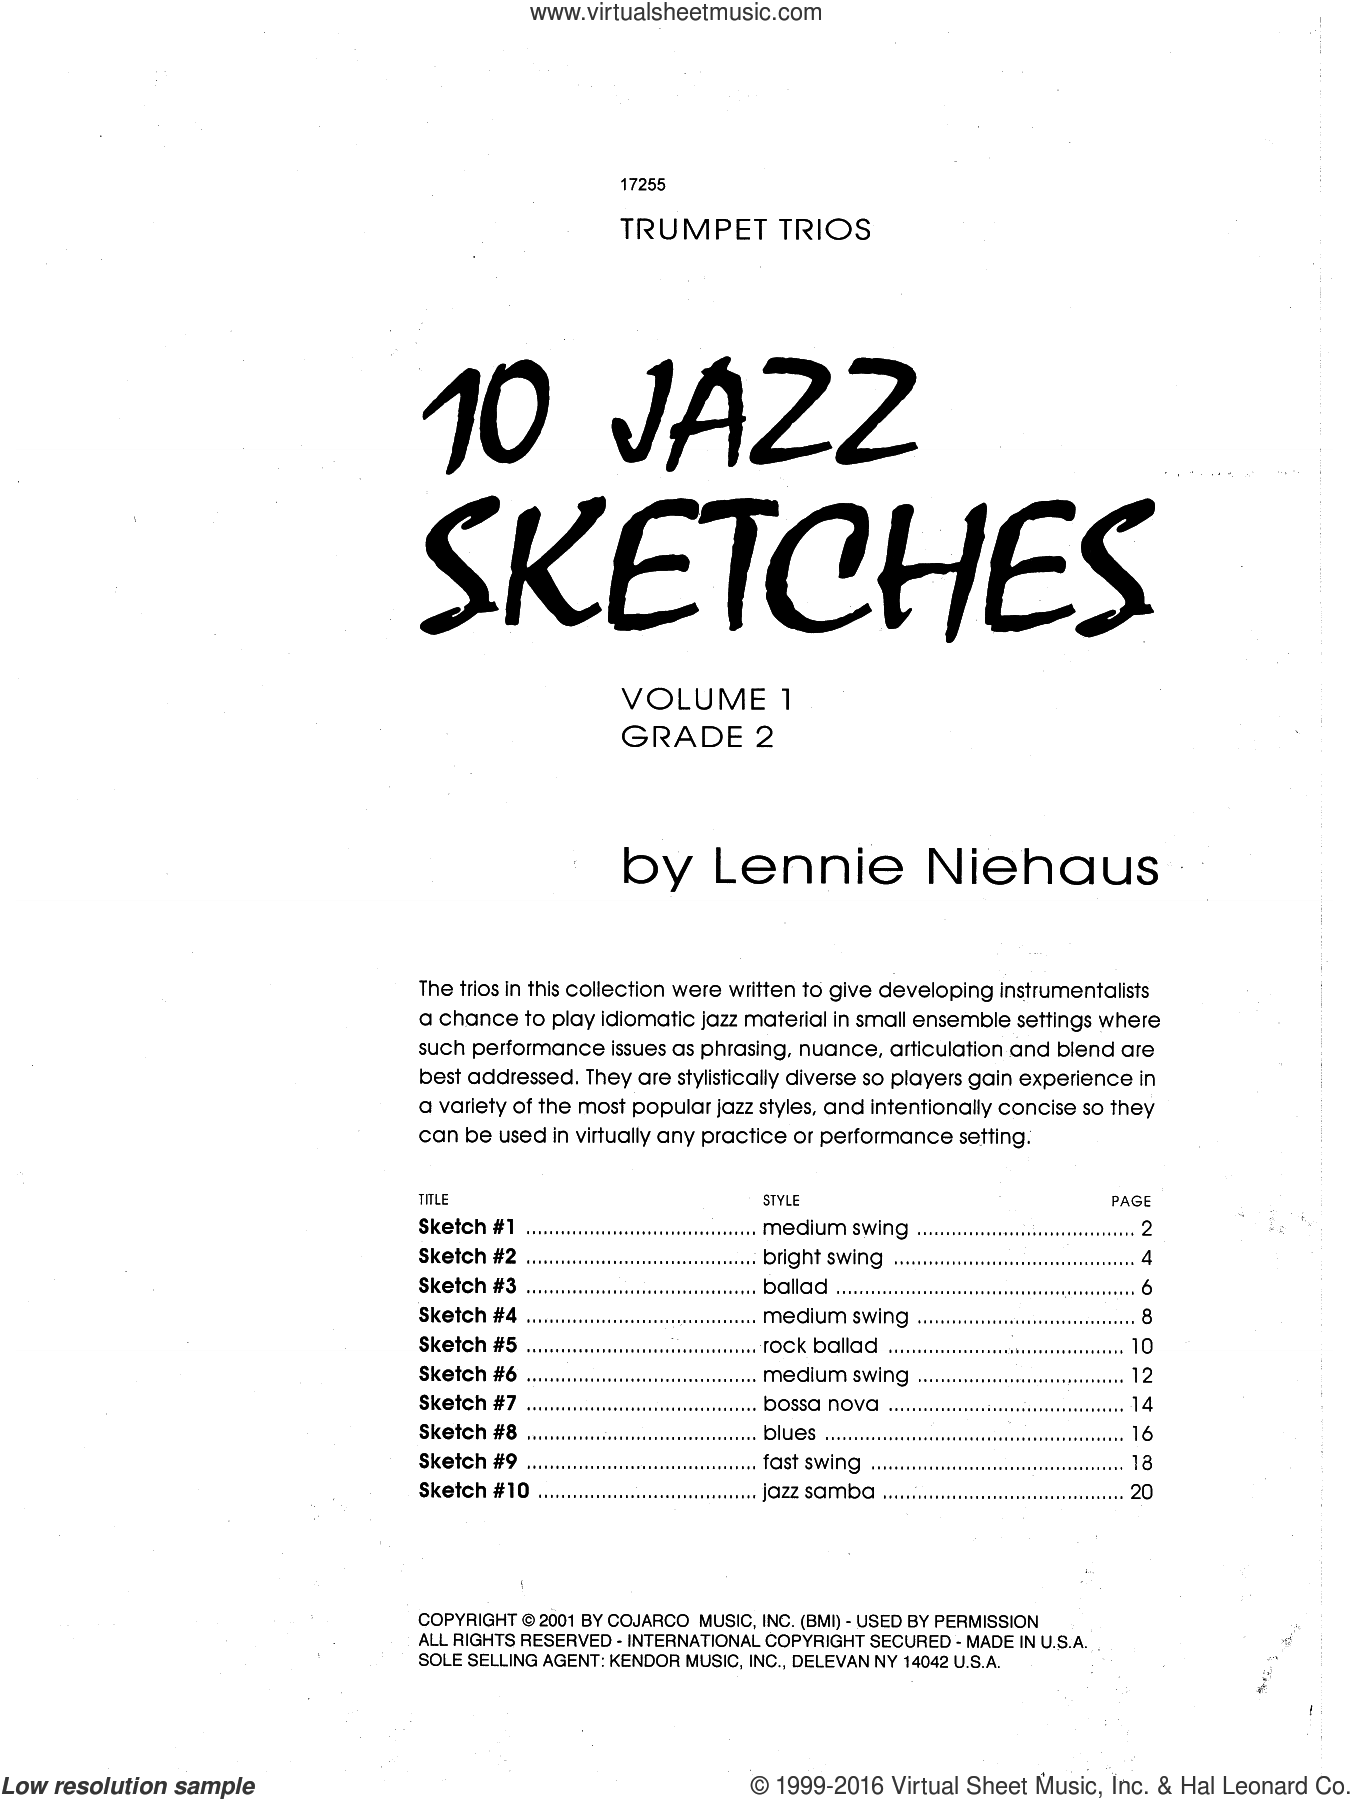 10 Jazz Sketches, Volume 1 sheet music for trumpet trio by Lennie Niehaus. Score Image Preview.